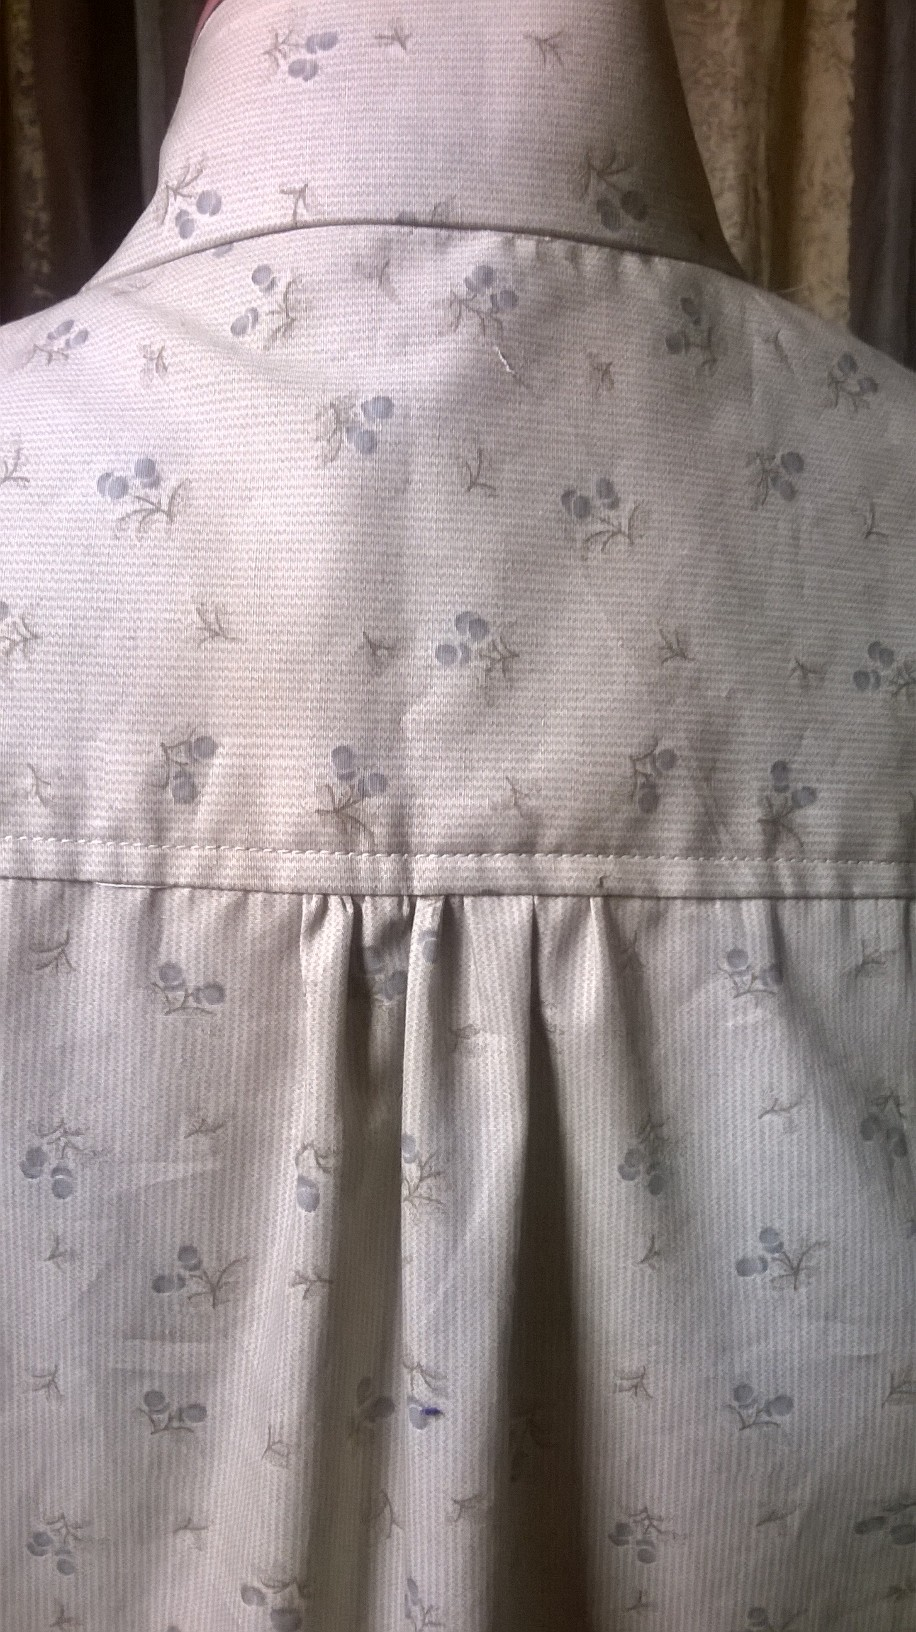 Top-stitching detail on shirt